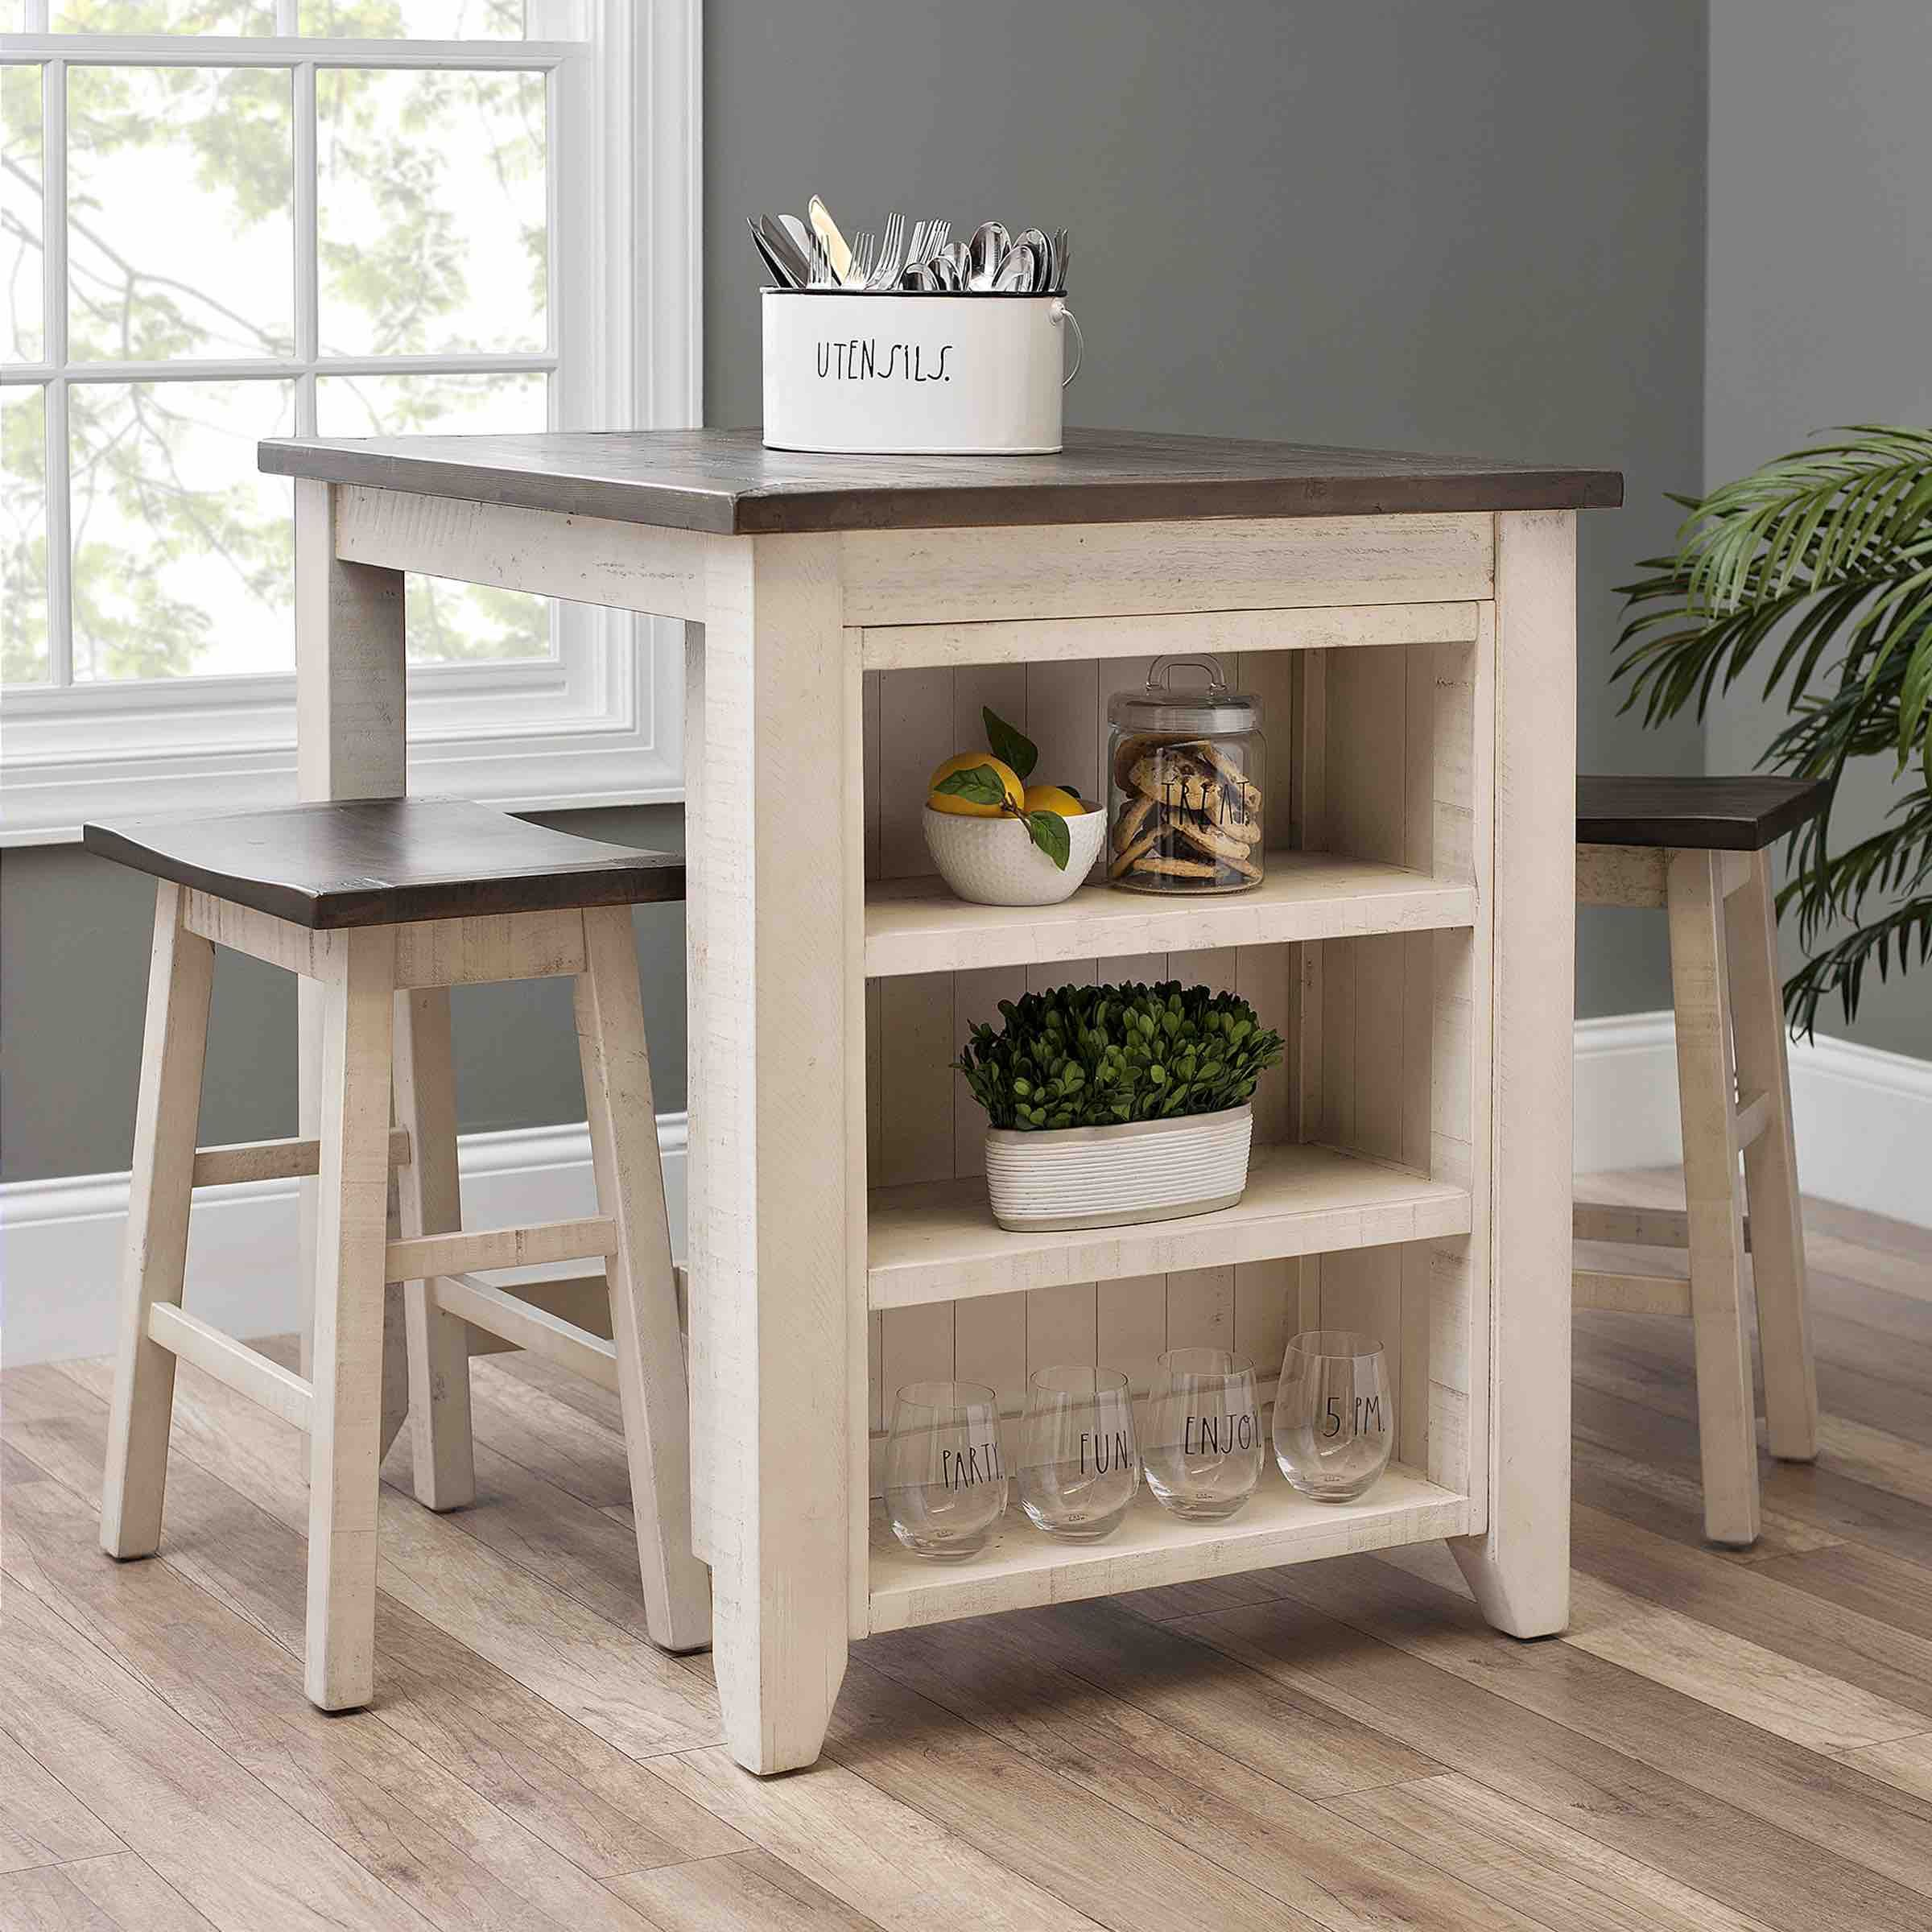 Every Great Kitchen Needs A Beautiful Kitchen Island For Extra Counter Space Kitchen Island With Seating Island With Seating Furniture